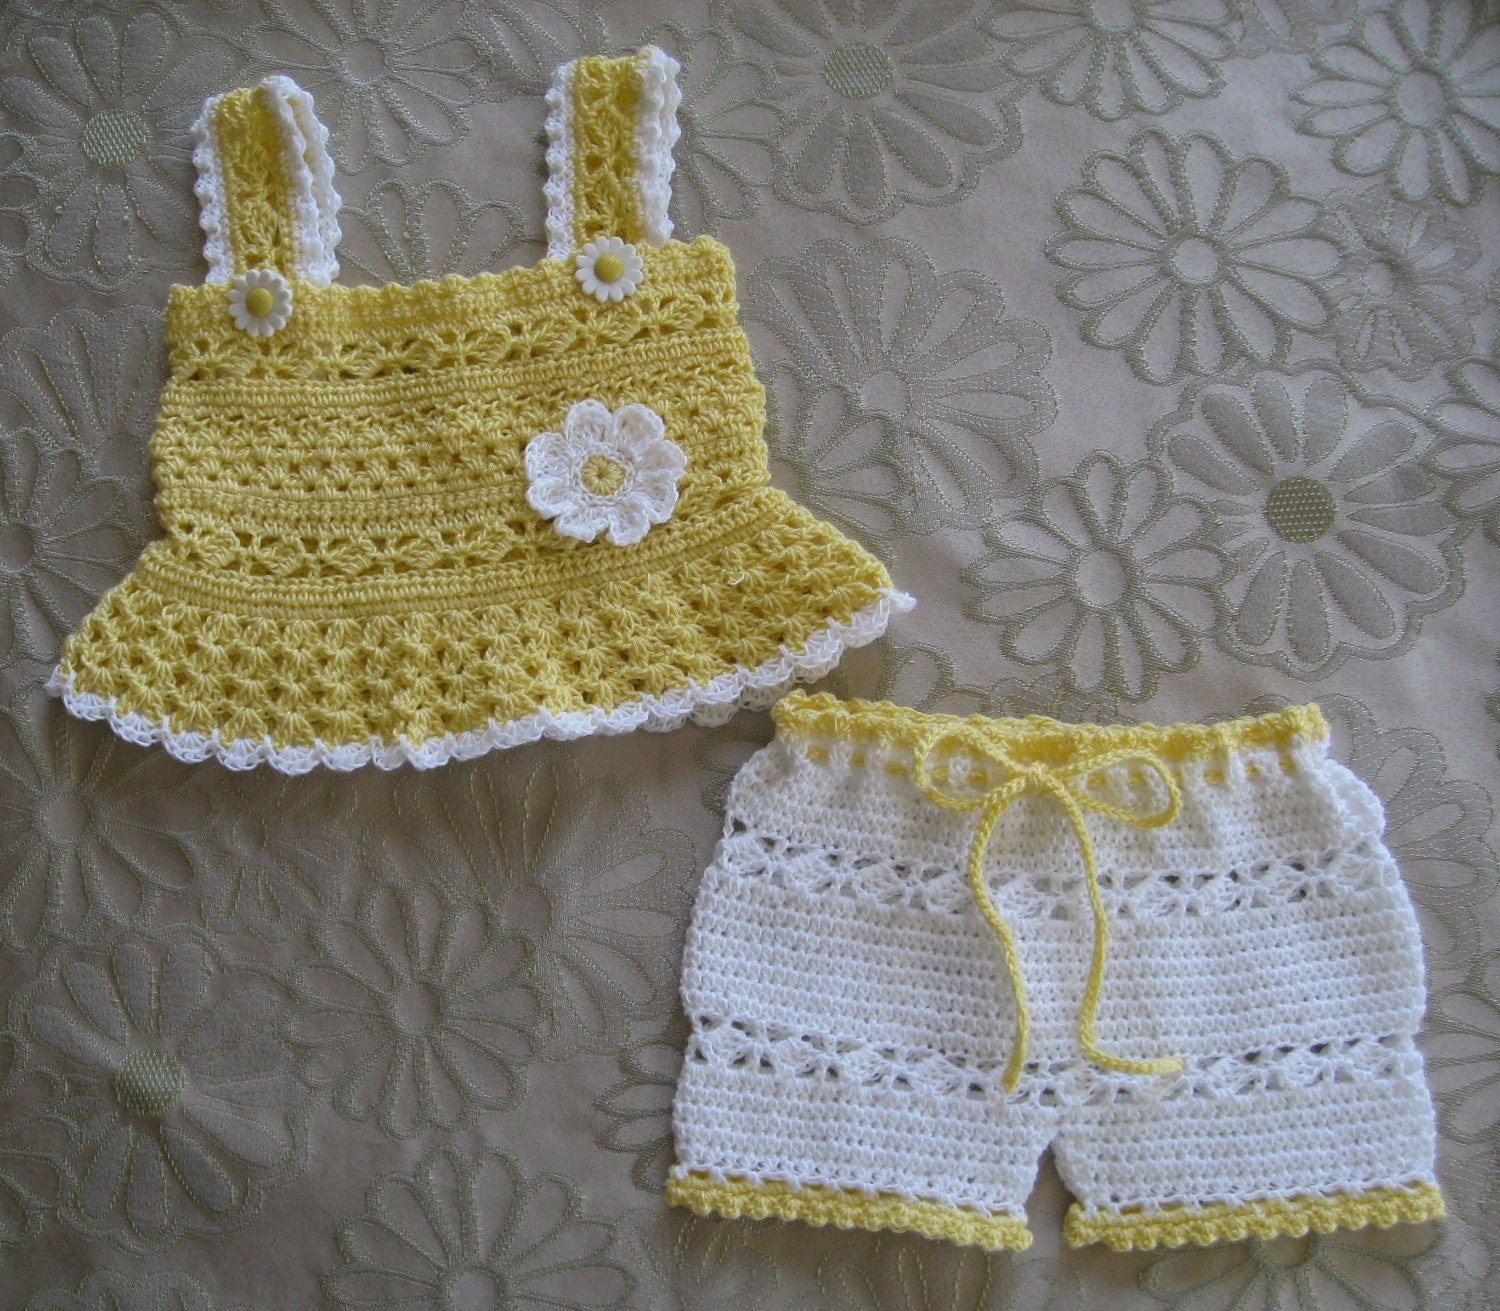 Free Crochet Patterns On Etsy : Crochet Pattern for Daisy Tank and Shorts by ...